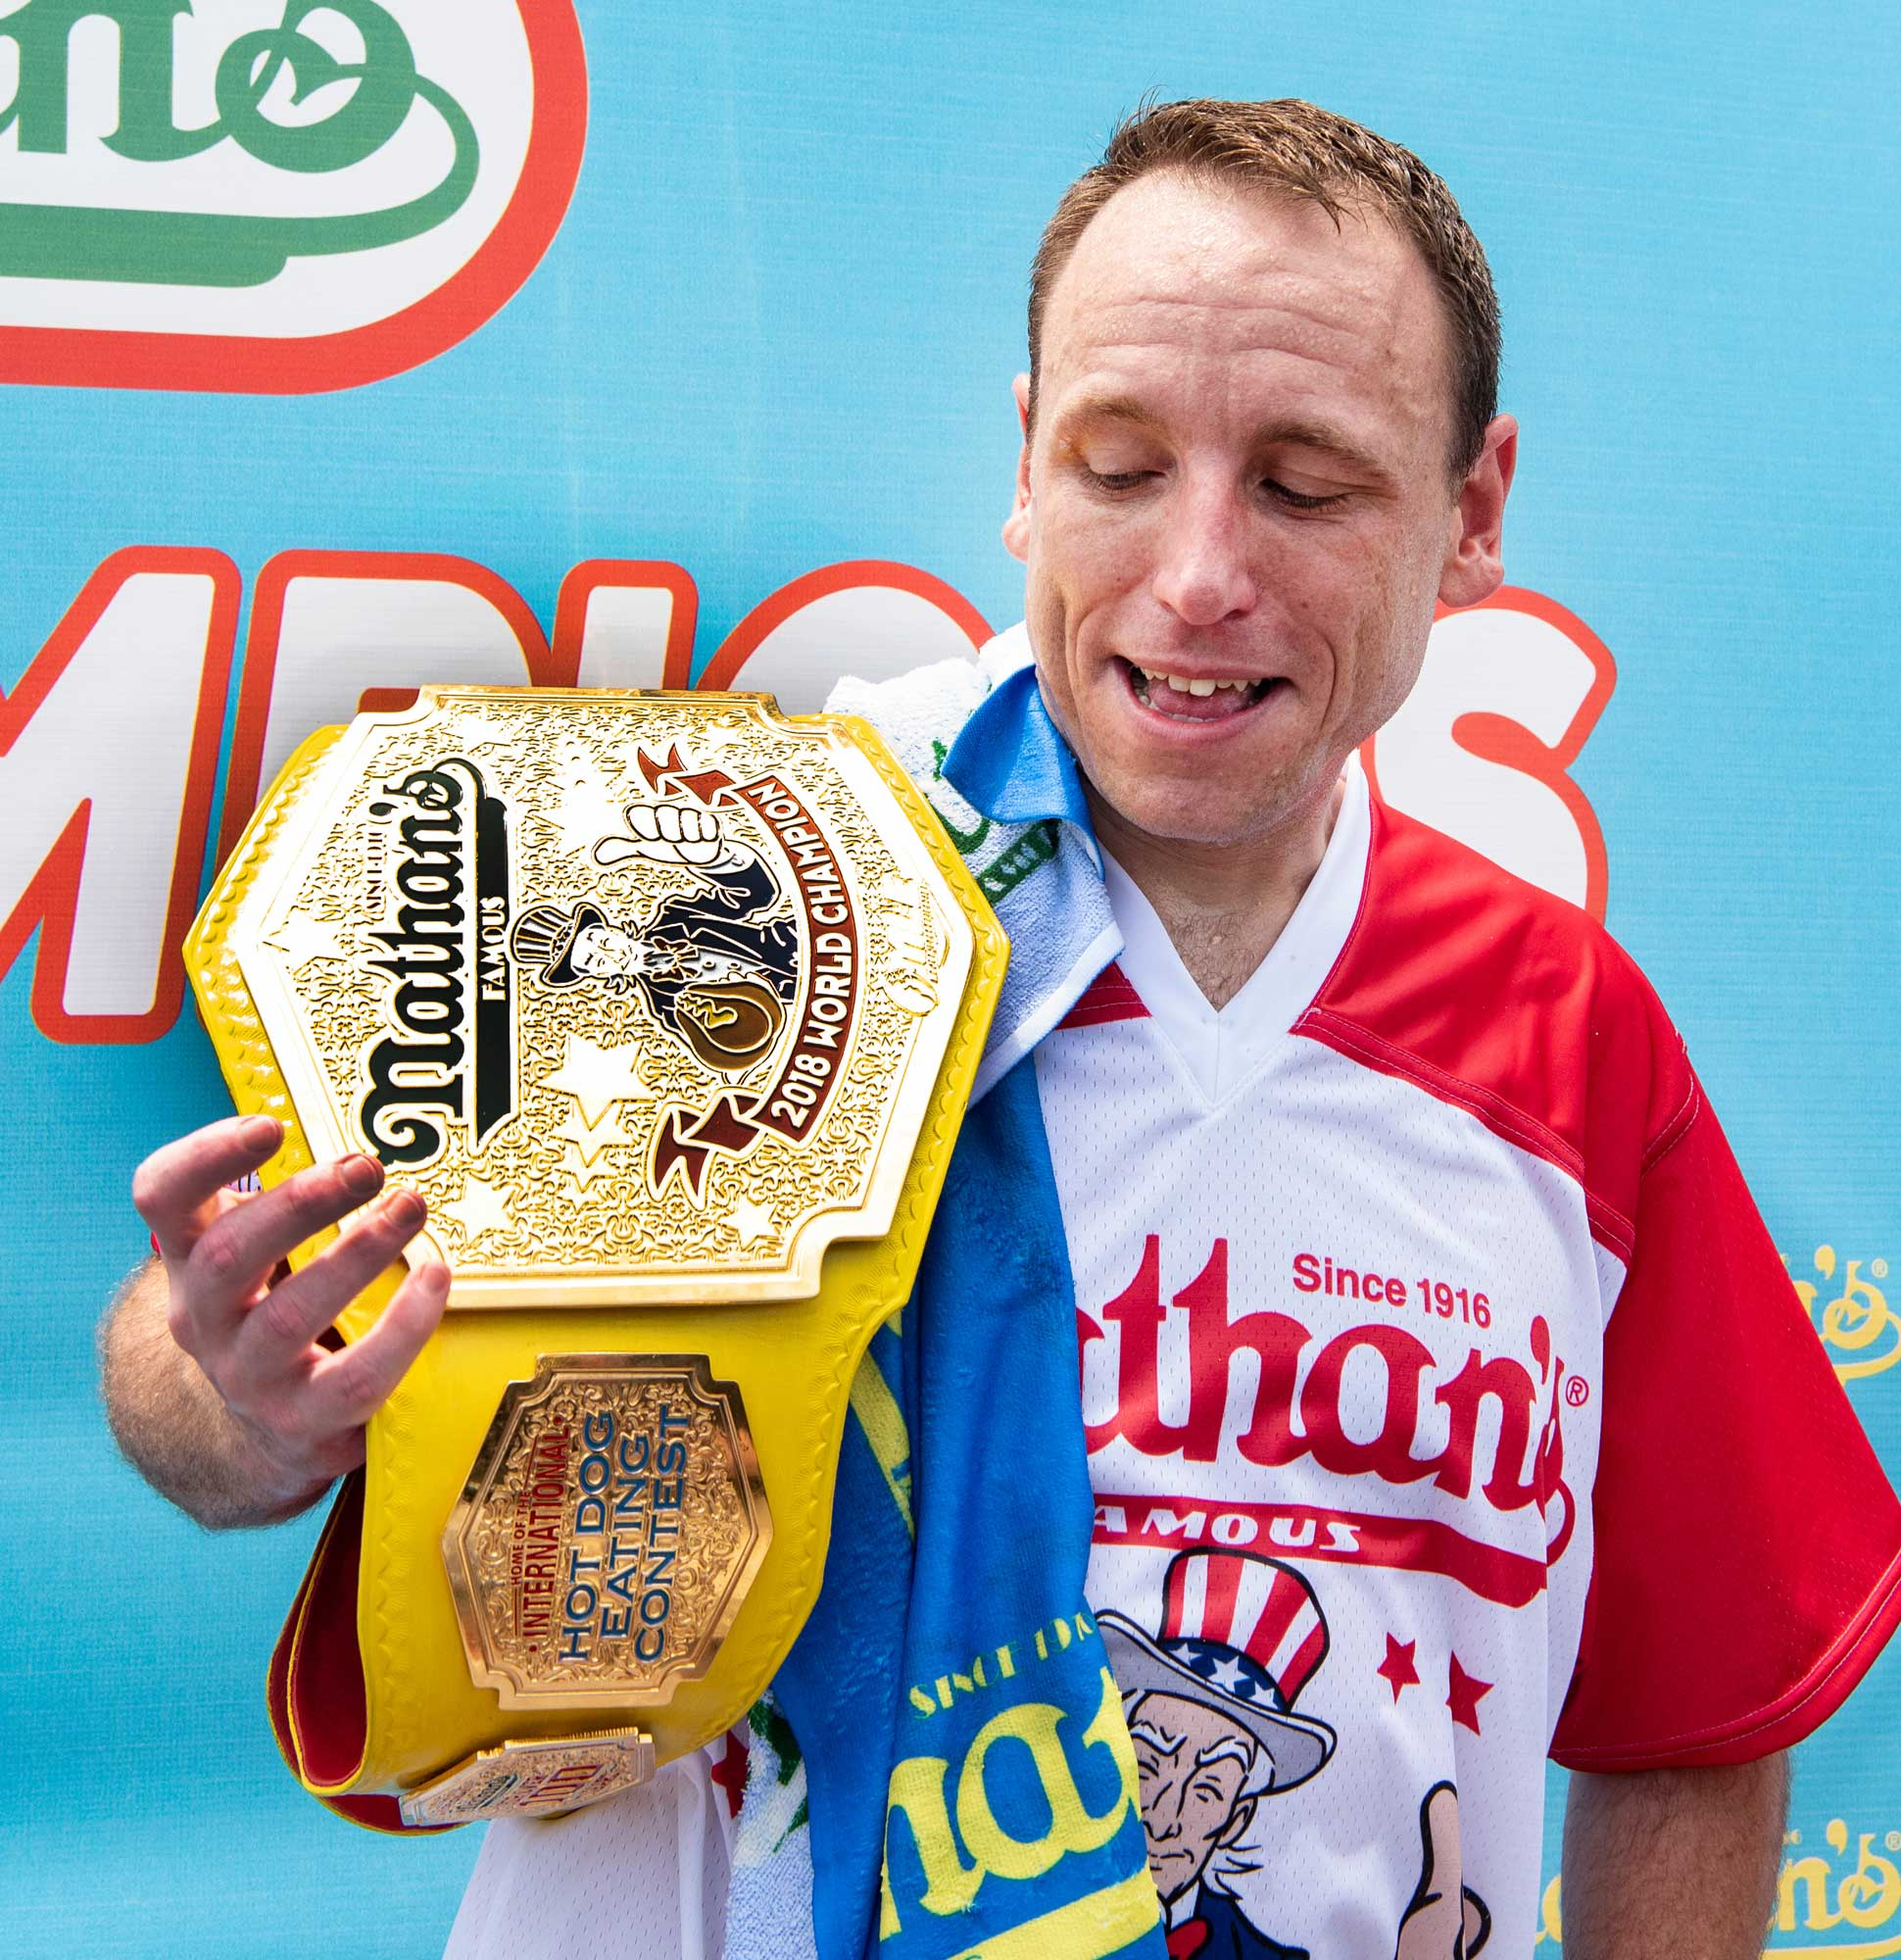 Getting Frank with World Hot Dog Eating Champion